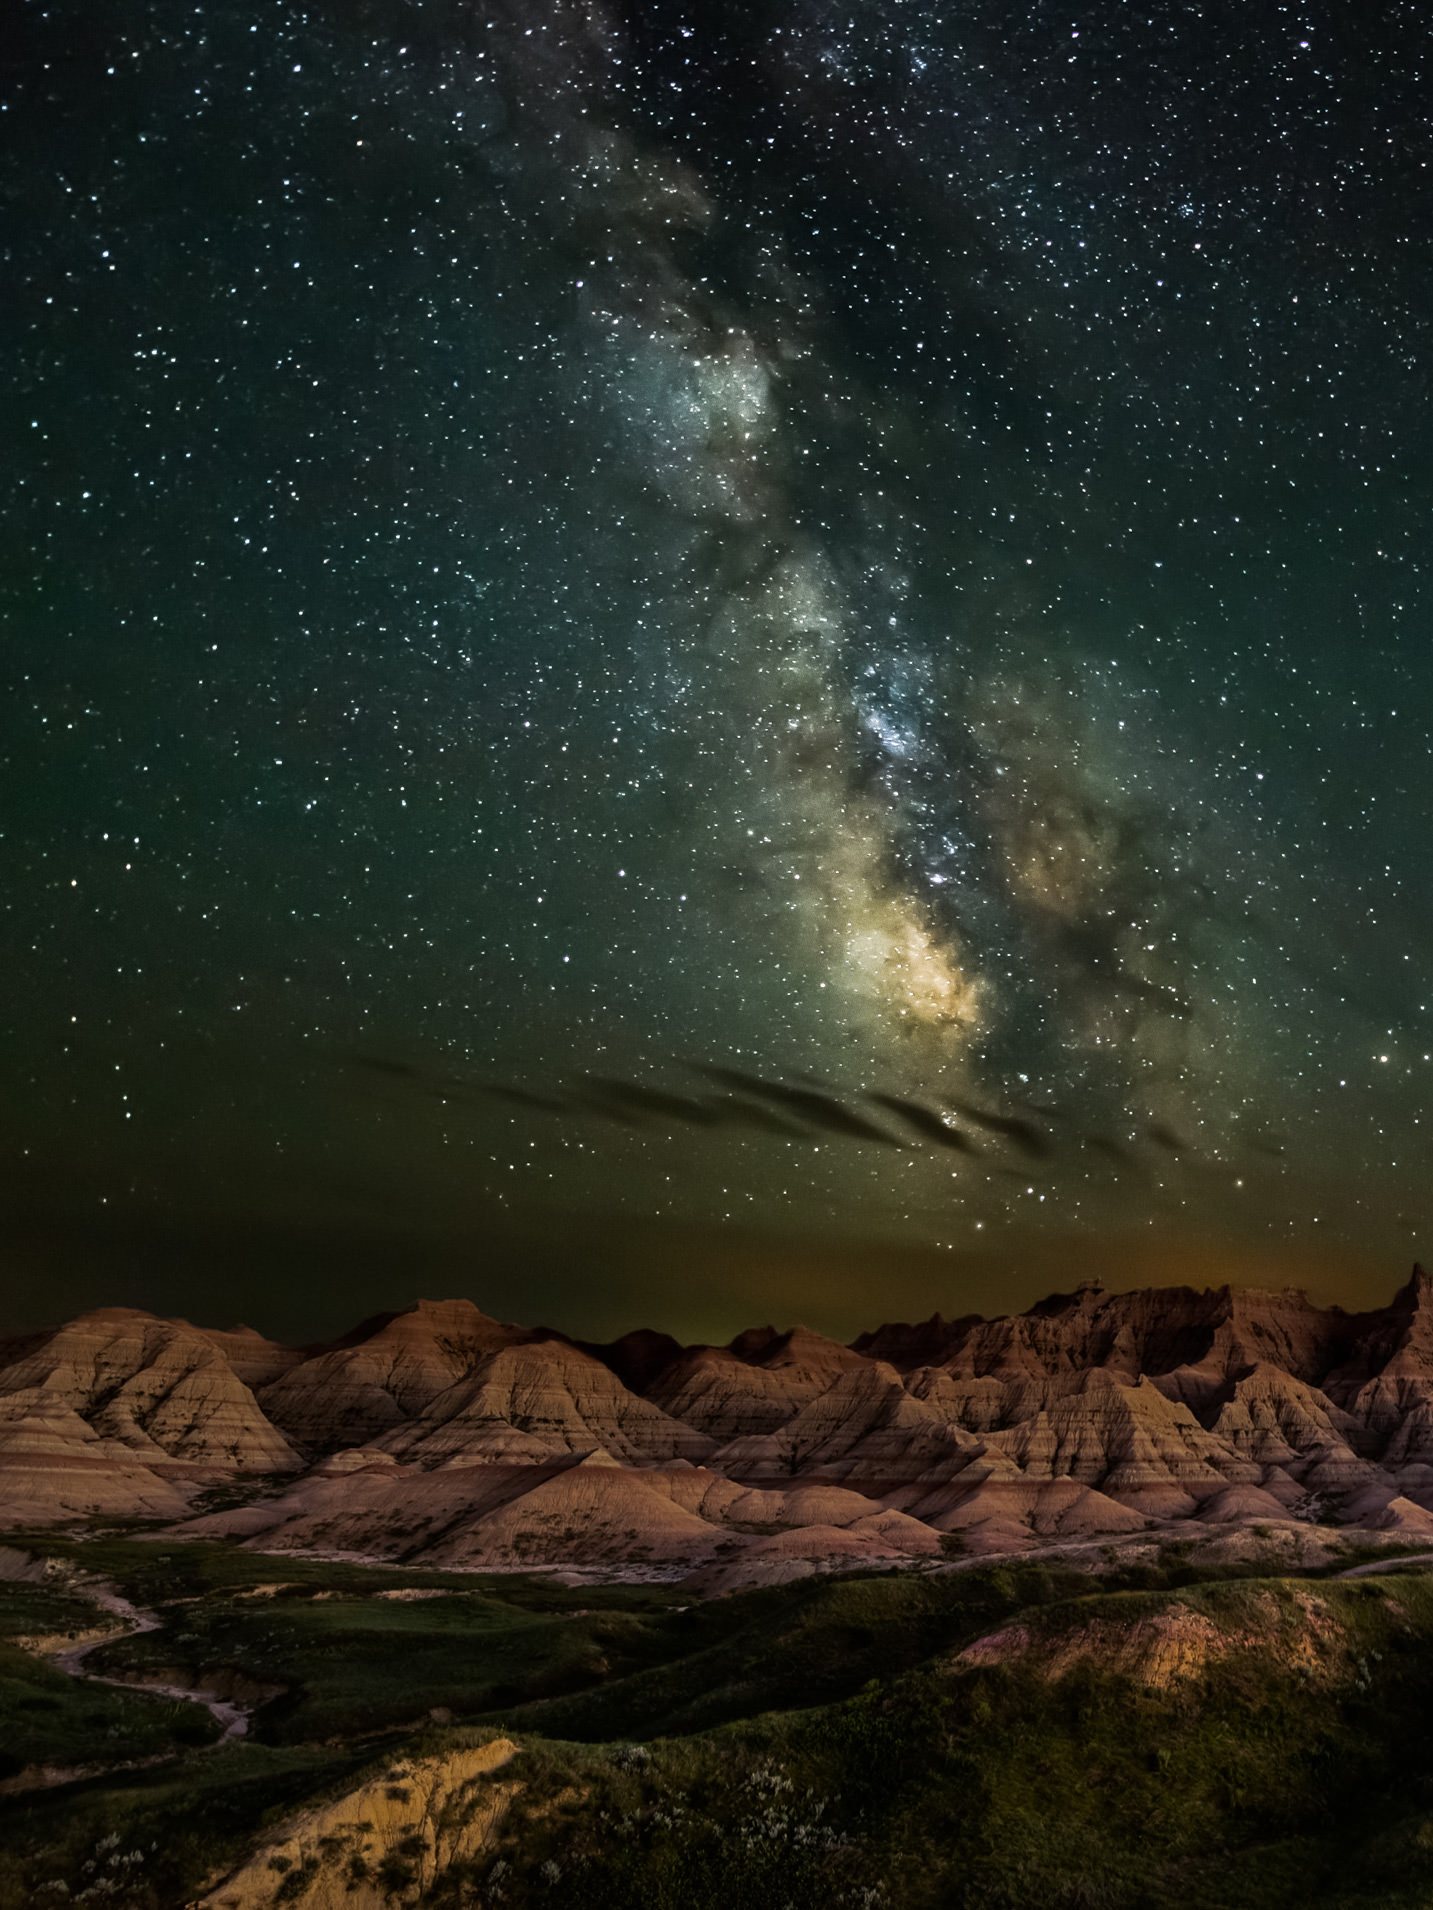 Night time sky in Badlands National Park